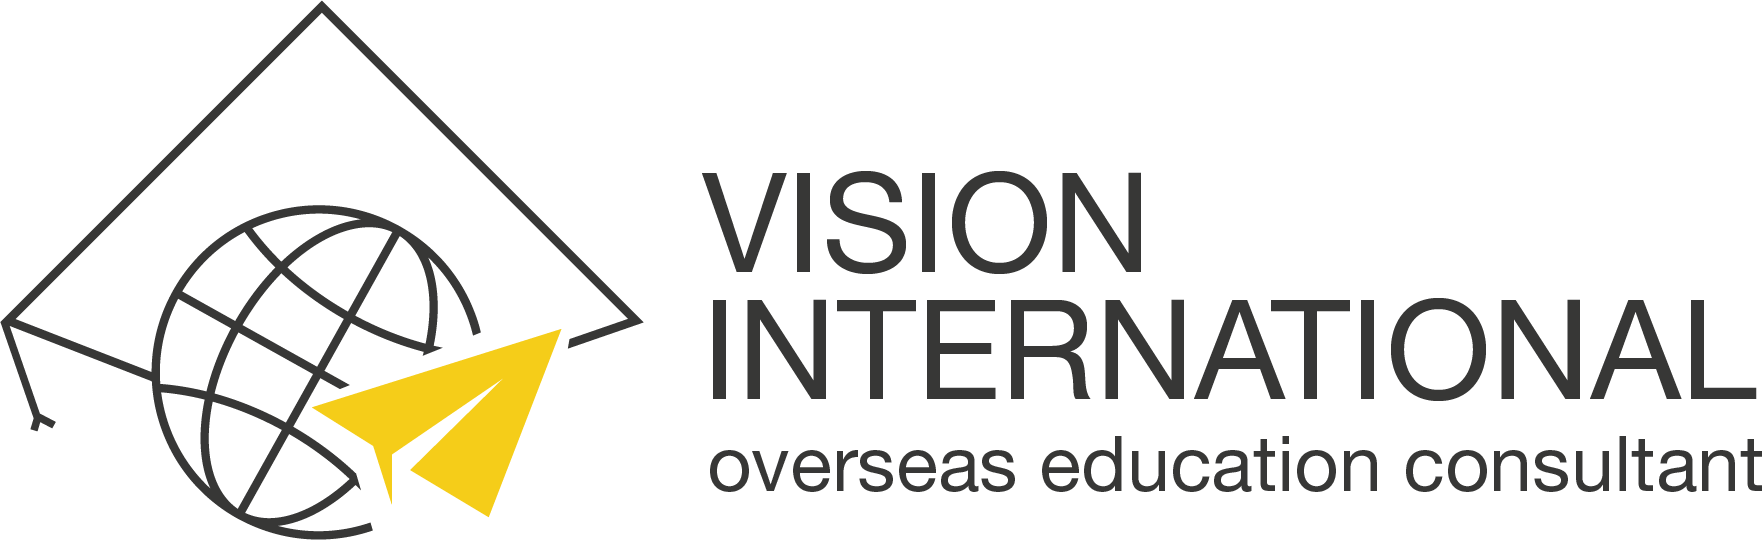 Vision International Overseas Education